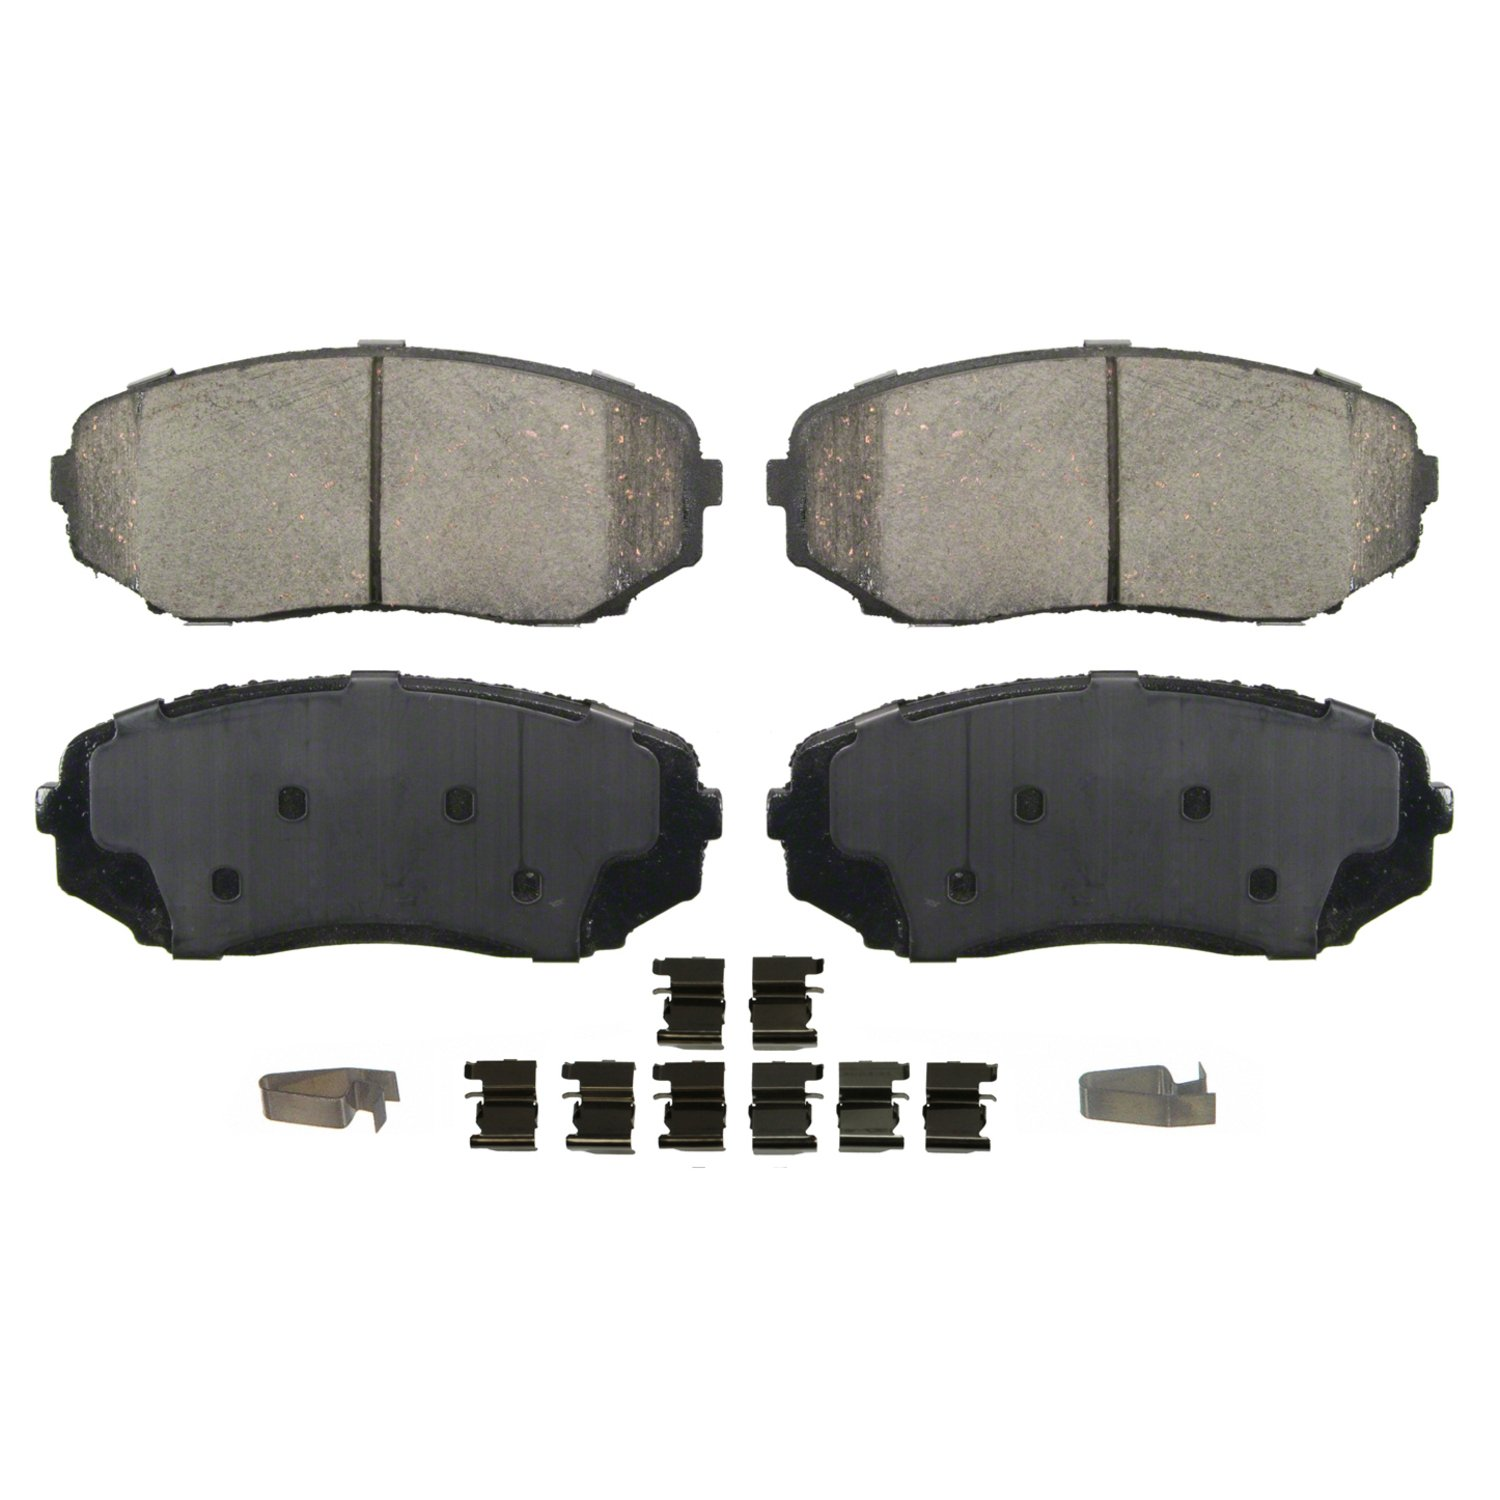 Wagner QuickStop ZD1258 Ceramic Disc Pad Set Includes Pad Installation Hardware, Front Wagner Brake